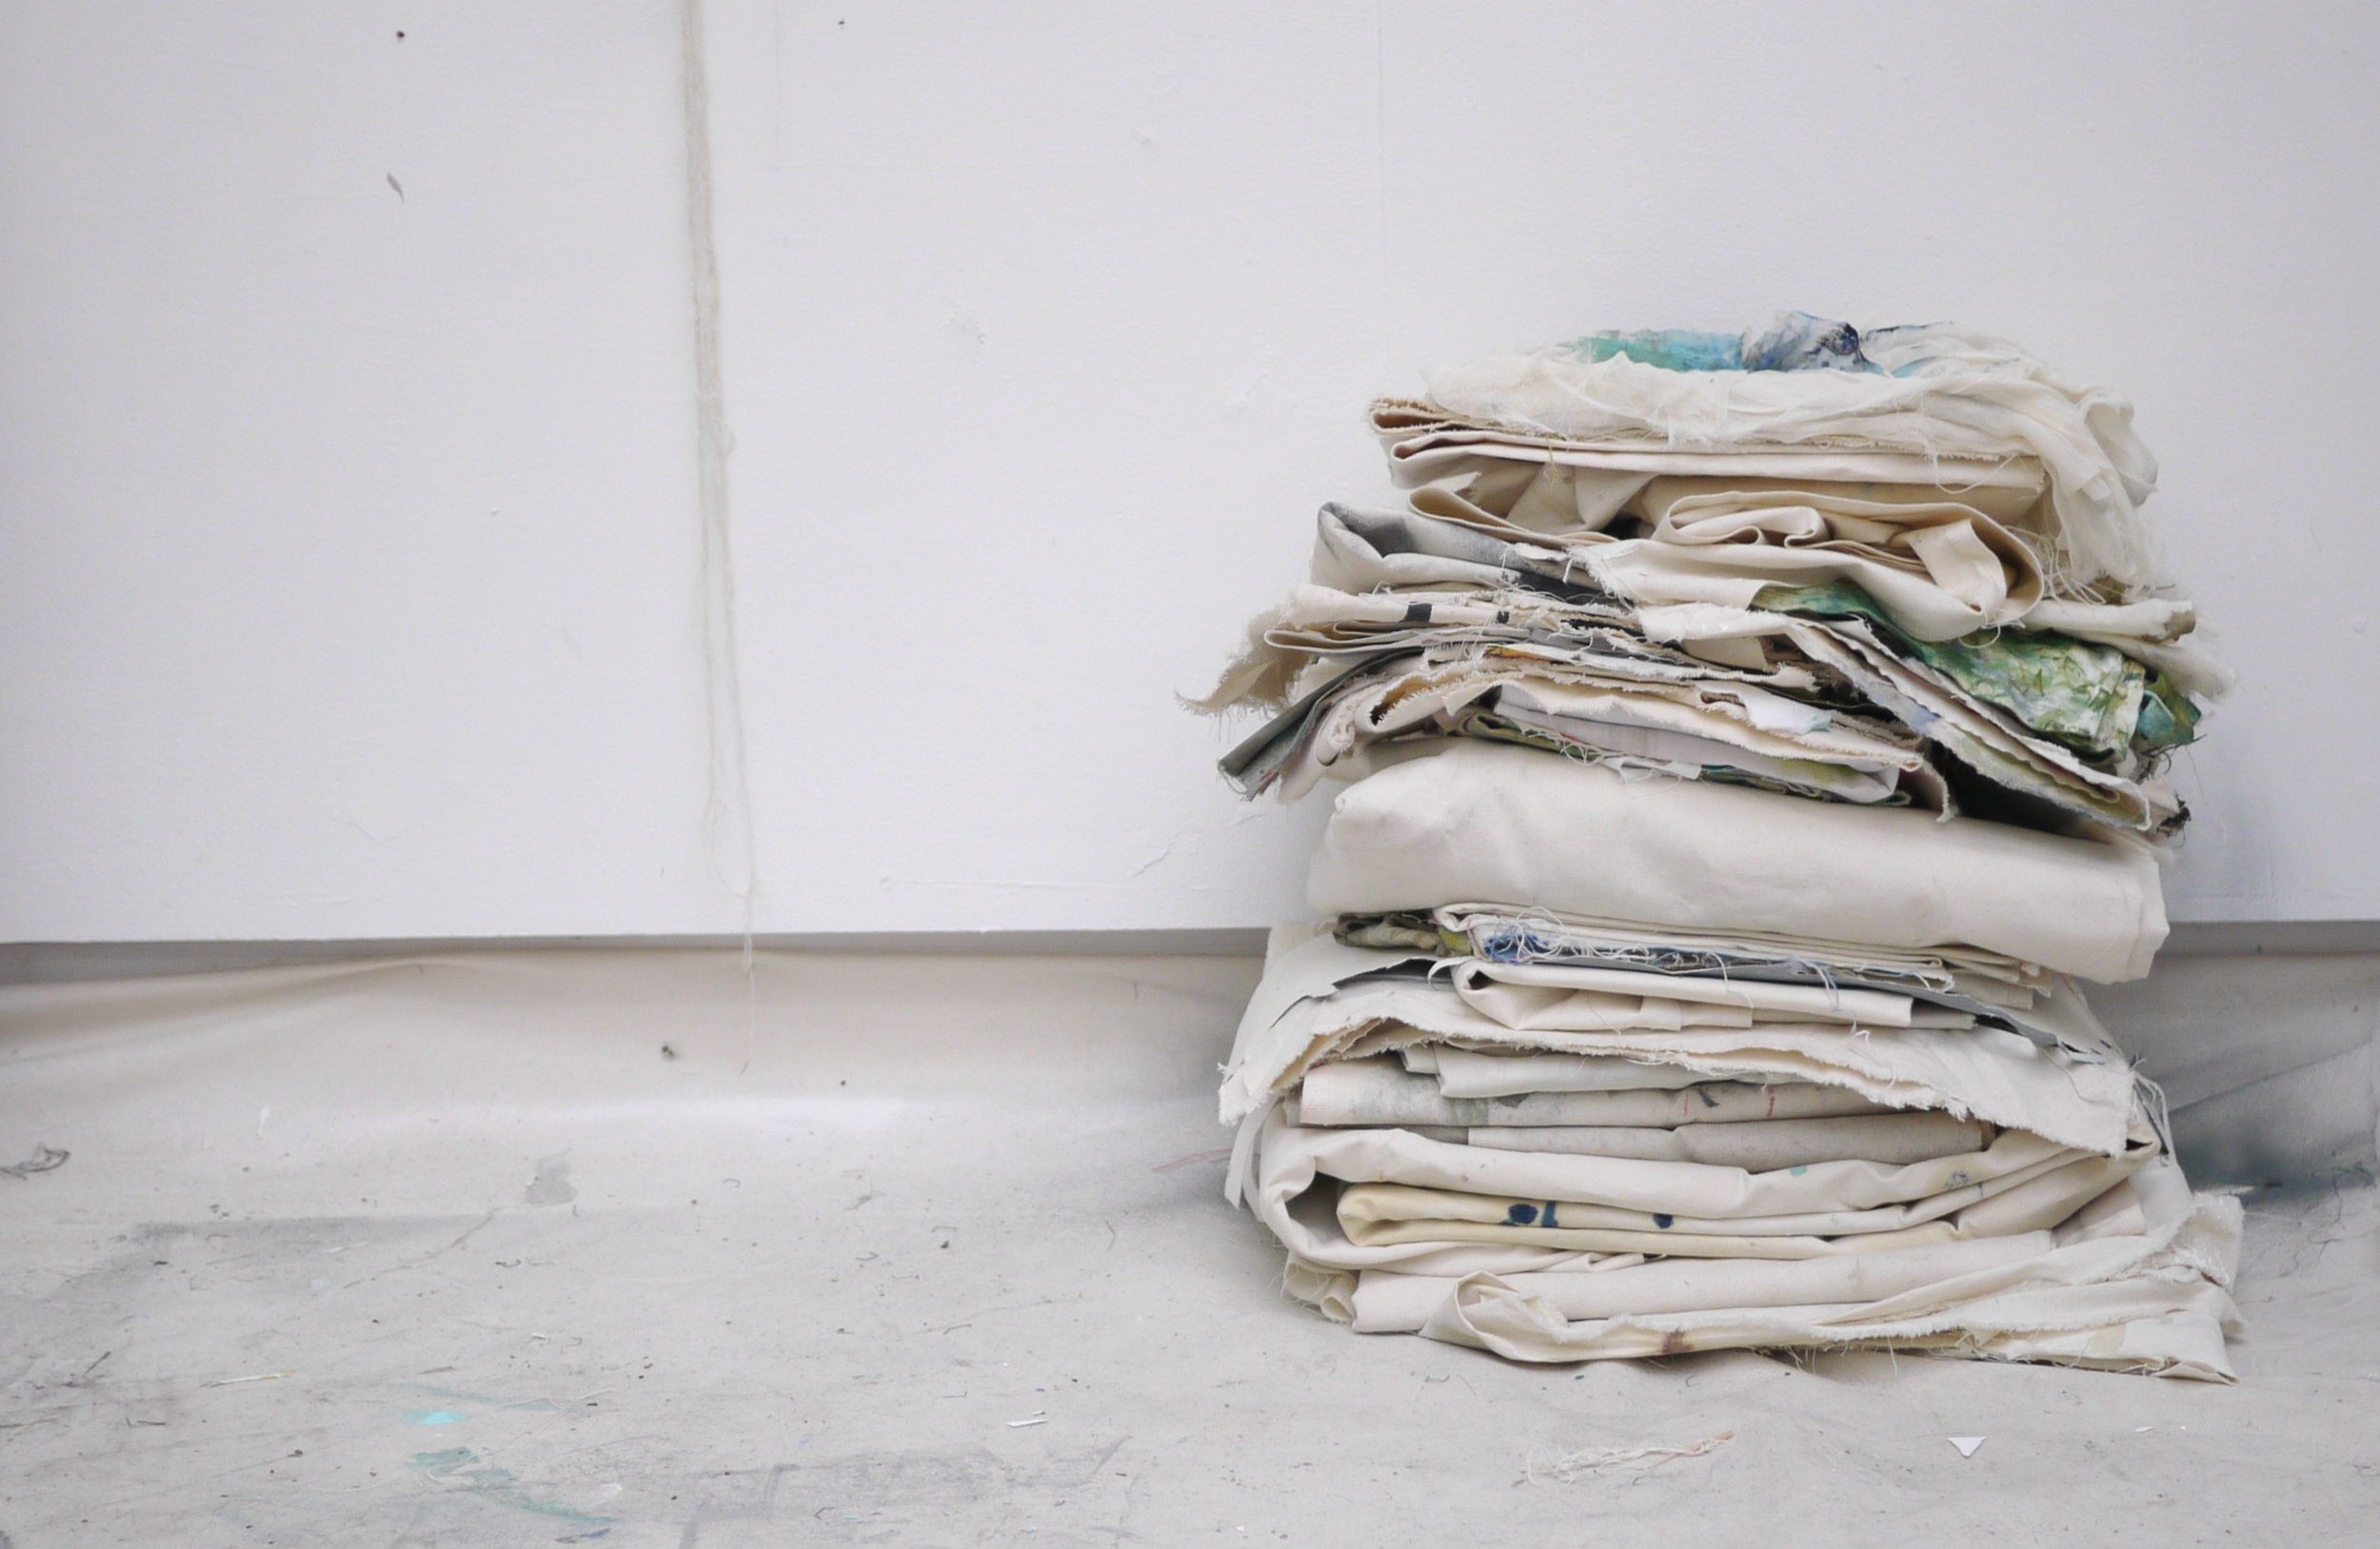 Ally McGinn (2017) Pile  [Ongoing performance]. 'Found' canvas. Size varies daily  While piling or shaping the canvas challenges both our reading of 'painting' and notions of value in painting.   By exposing the canvas to a non-permanent form we question its value as an object. Performance without the artist.